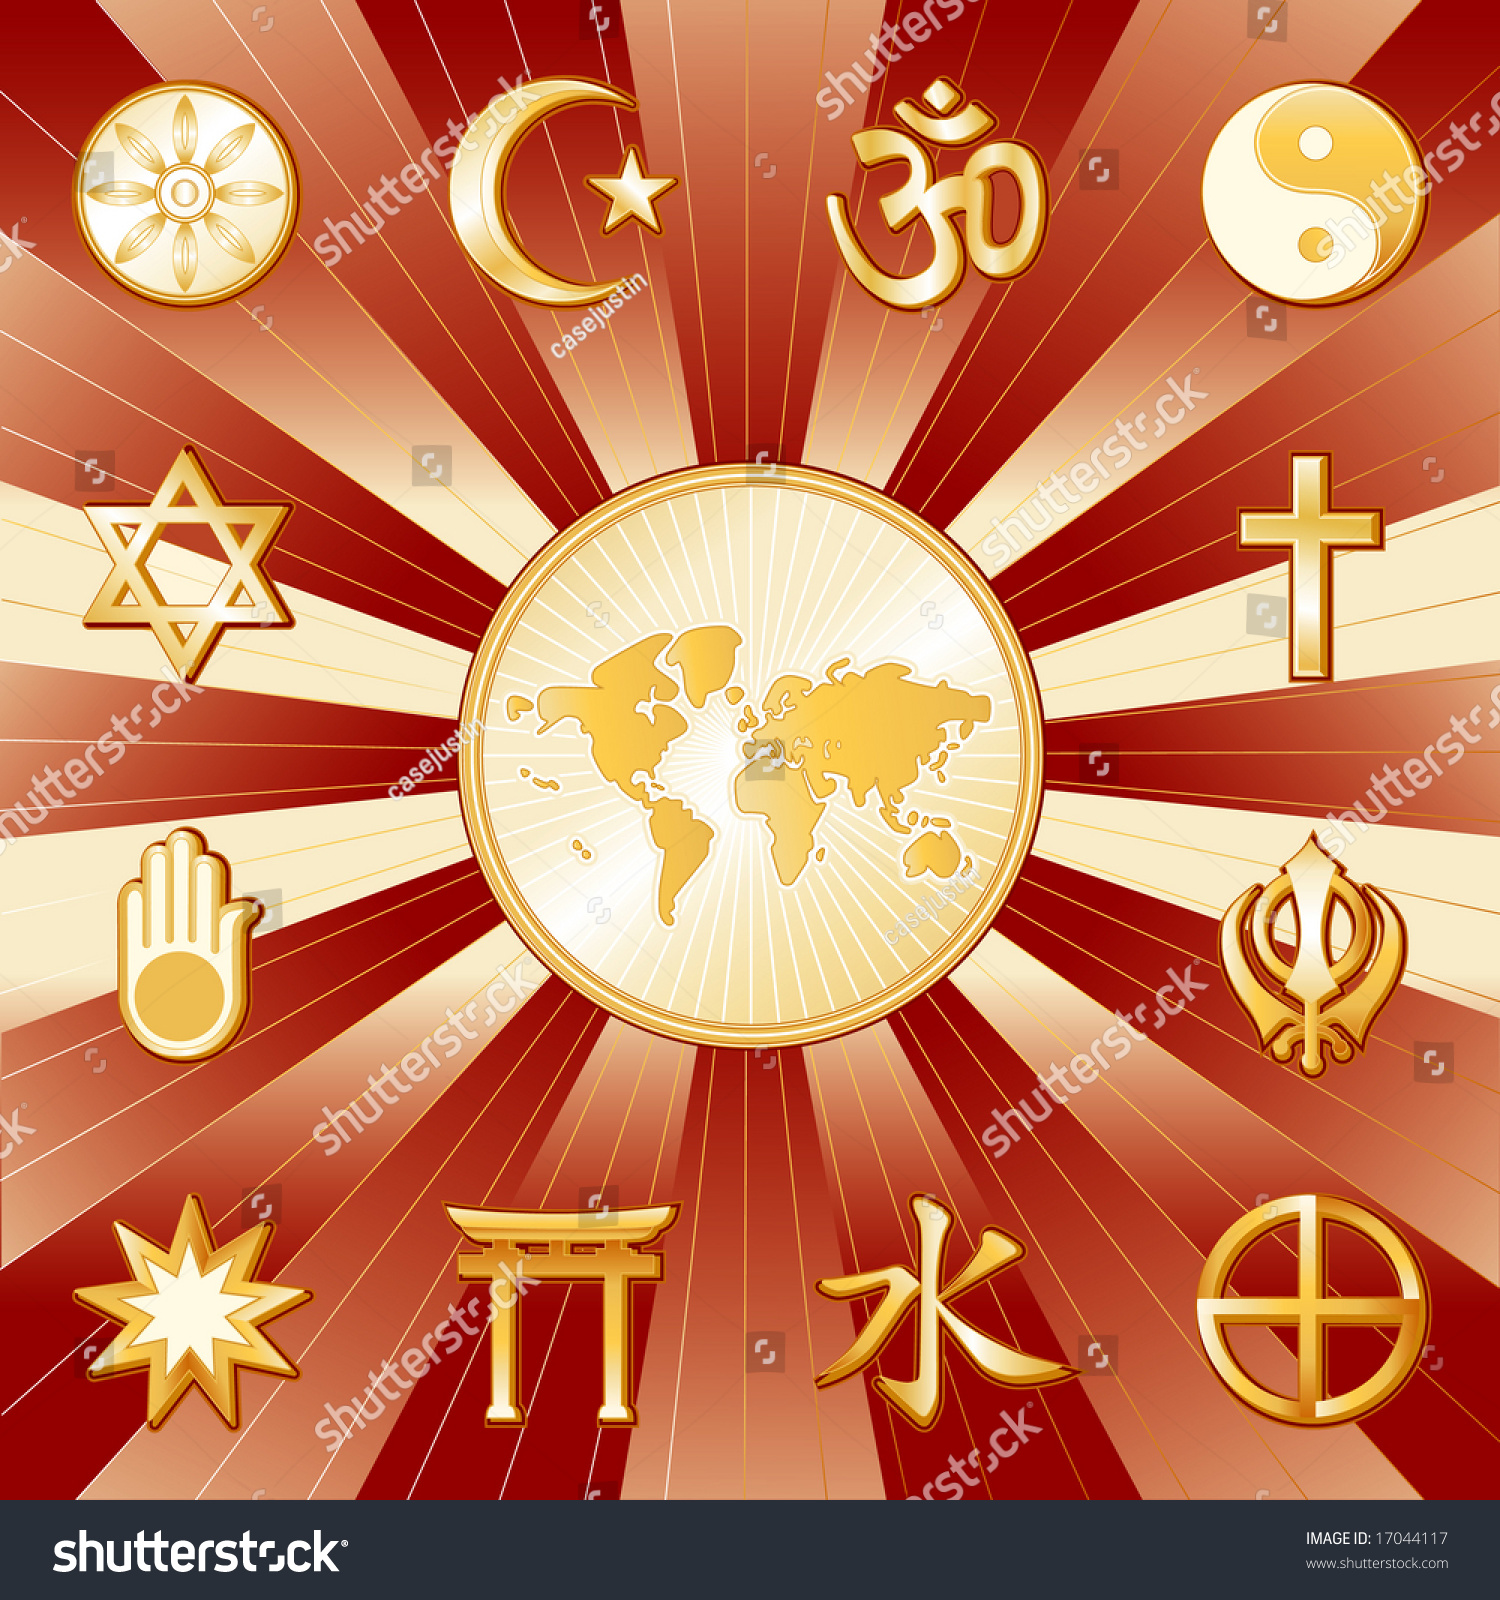 world religions hinduism buddhism judaism christianity islam Based on the work of the world christian encyclopedia:  234%: hinduism,  213%: islam, 162%: sikhism, 423%: islam 167%: buddhism, 187%: sikhism,  157%: hinduism, 308%: sikhism.